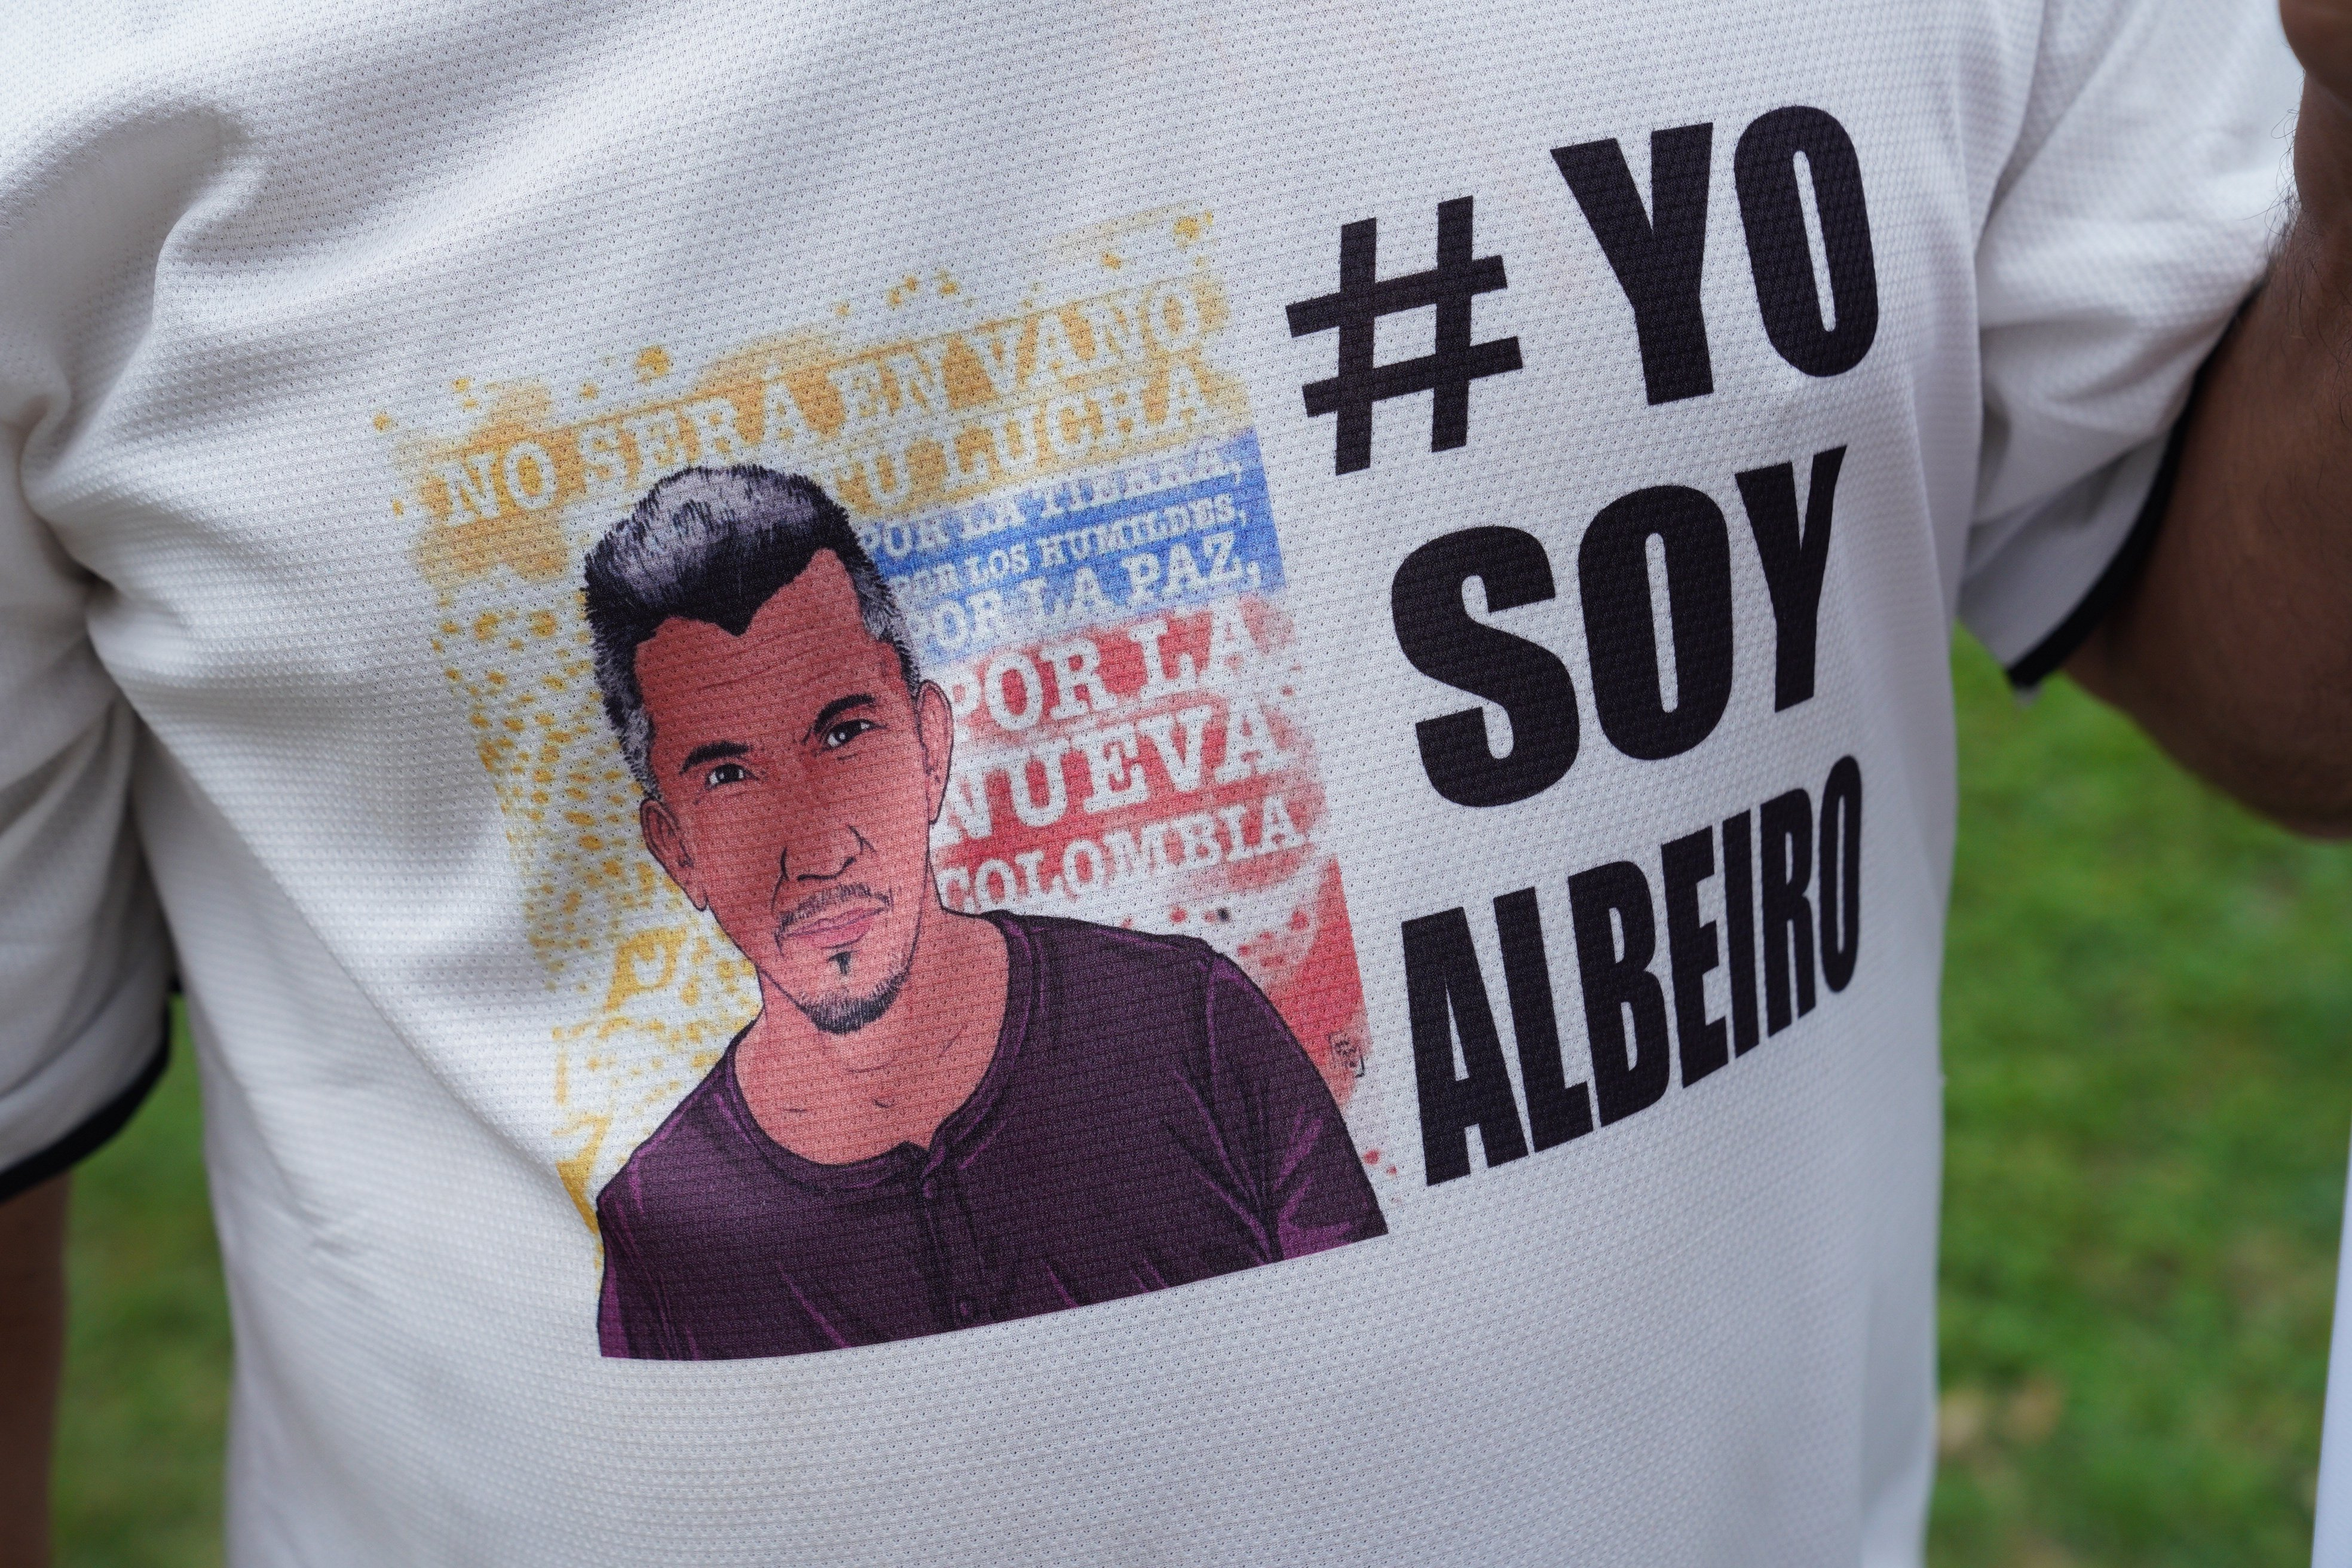 A former FARC fighter wears a t-shirt with the image of Juan de Jesus Monroy, also known as Albeiro, a FARC party leader murdered in October. The assassination unleashed Sunday's march on Bogota.